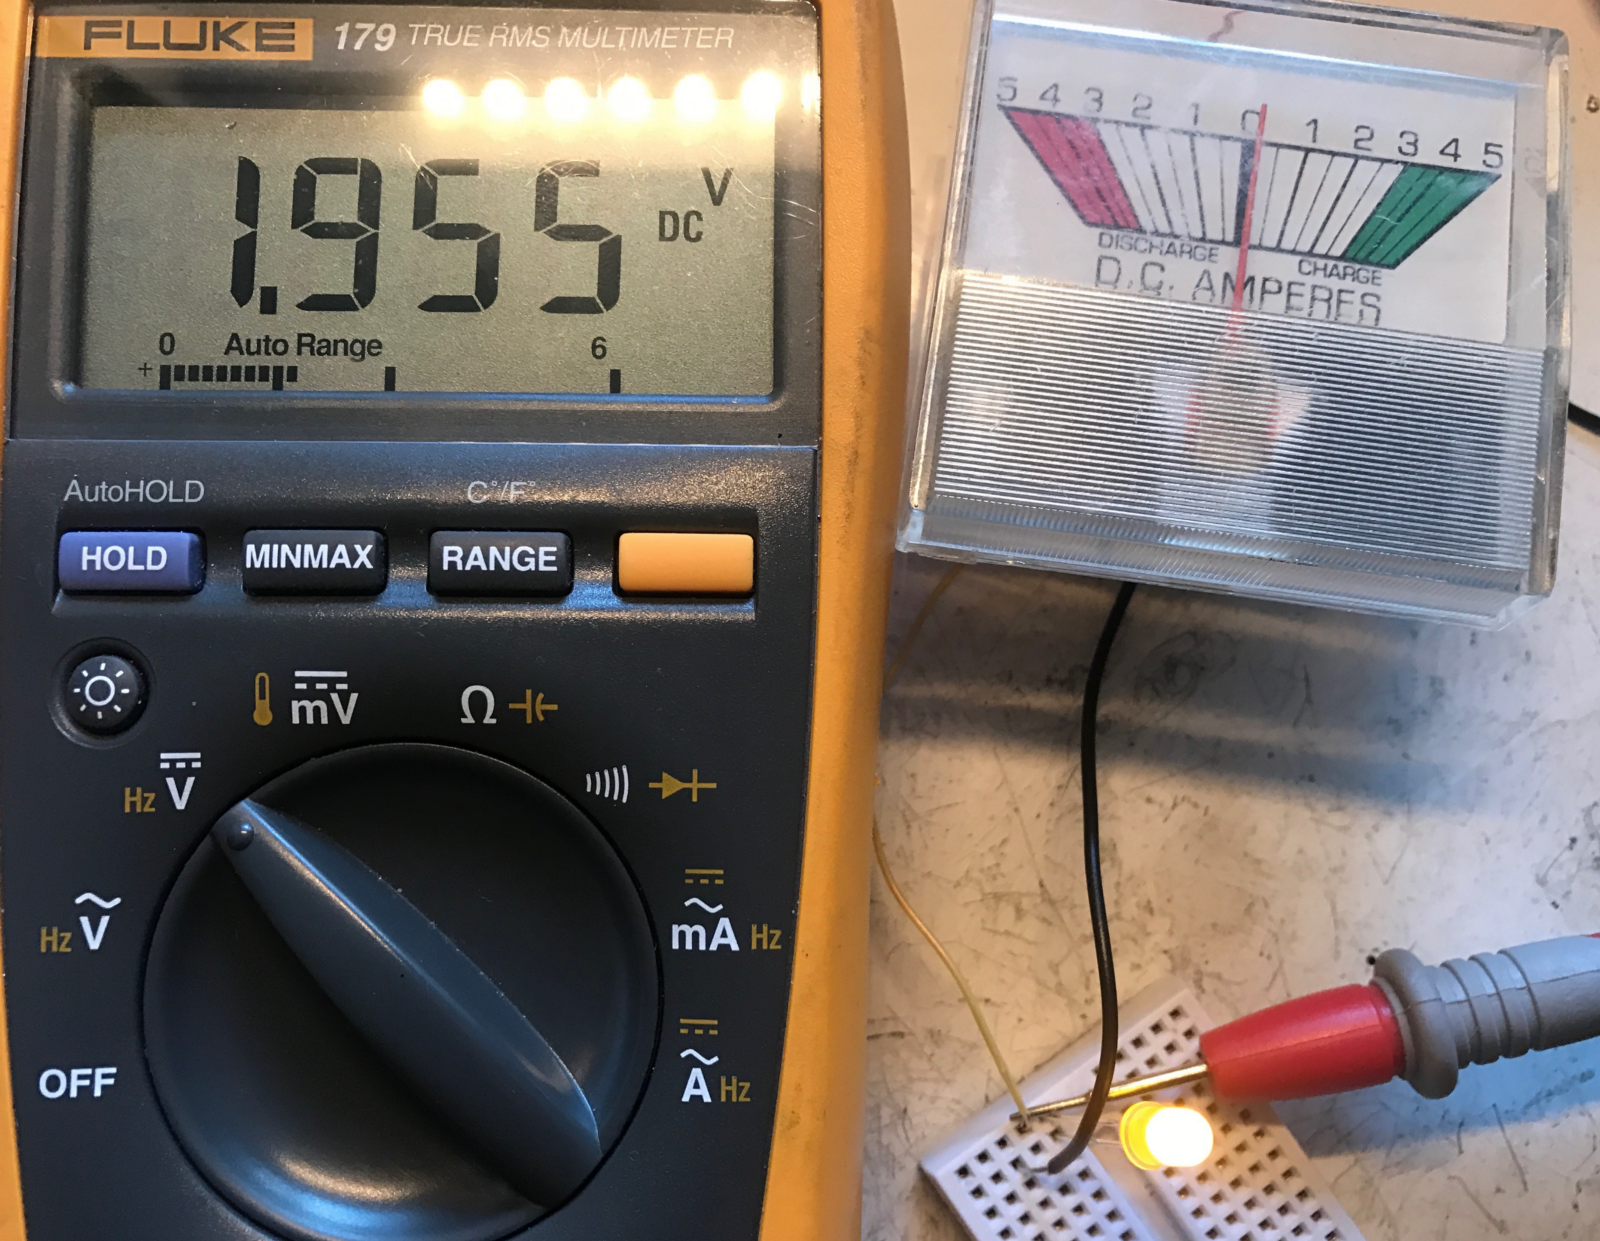 Voltage Regulators Revisted Lm317m 7812 Mcp170x Mic5219 And Icl7660 Circuit Electronics Led Voltmeter For Car Battery By Lm324 It Is What I Had Todo Current Mirror To Measure Ma As A Testing With On The Output Measured 1955 V Drop Across Independent Of Vin